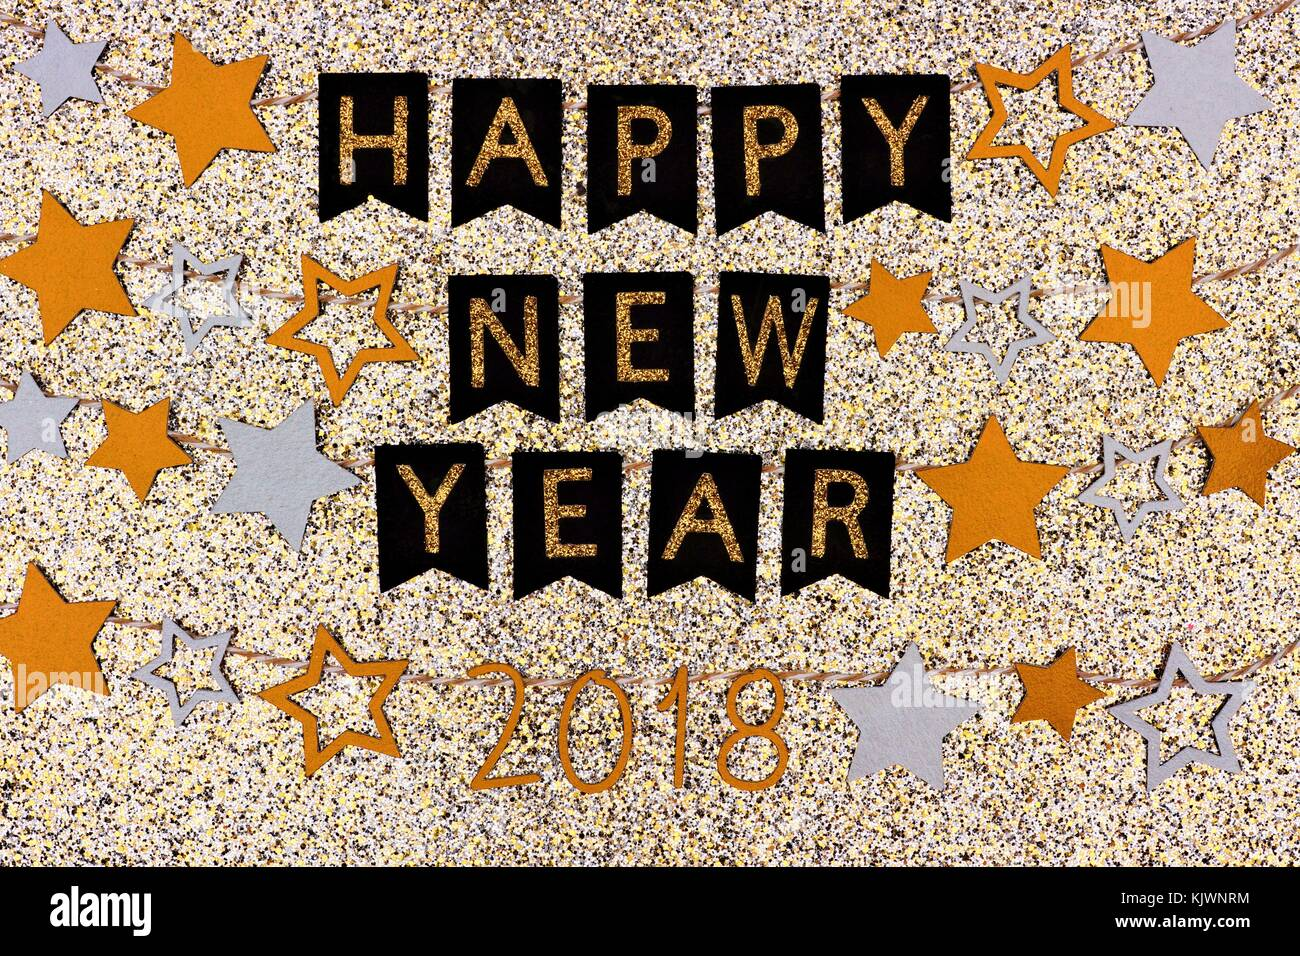 happy new year 2018 banner with strings of gold and silver stars against a glittery gold background